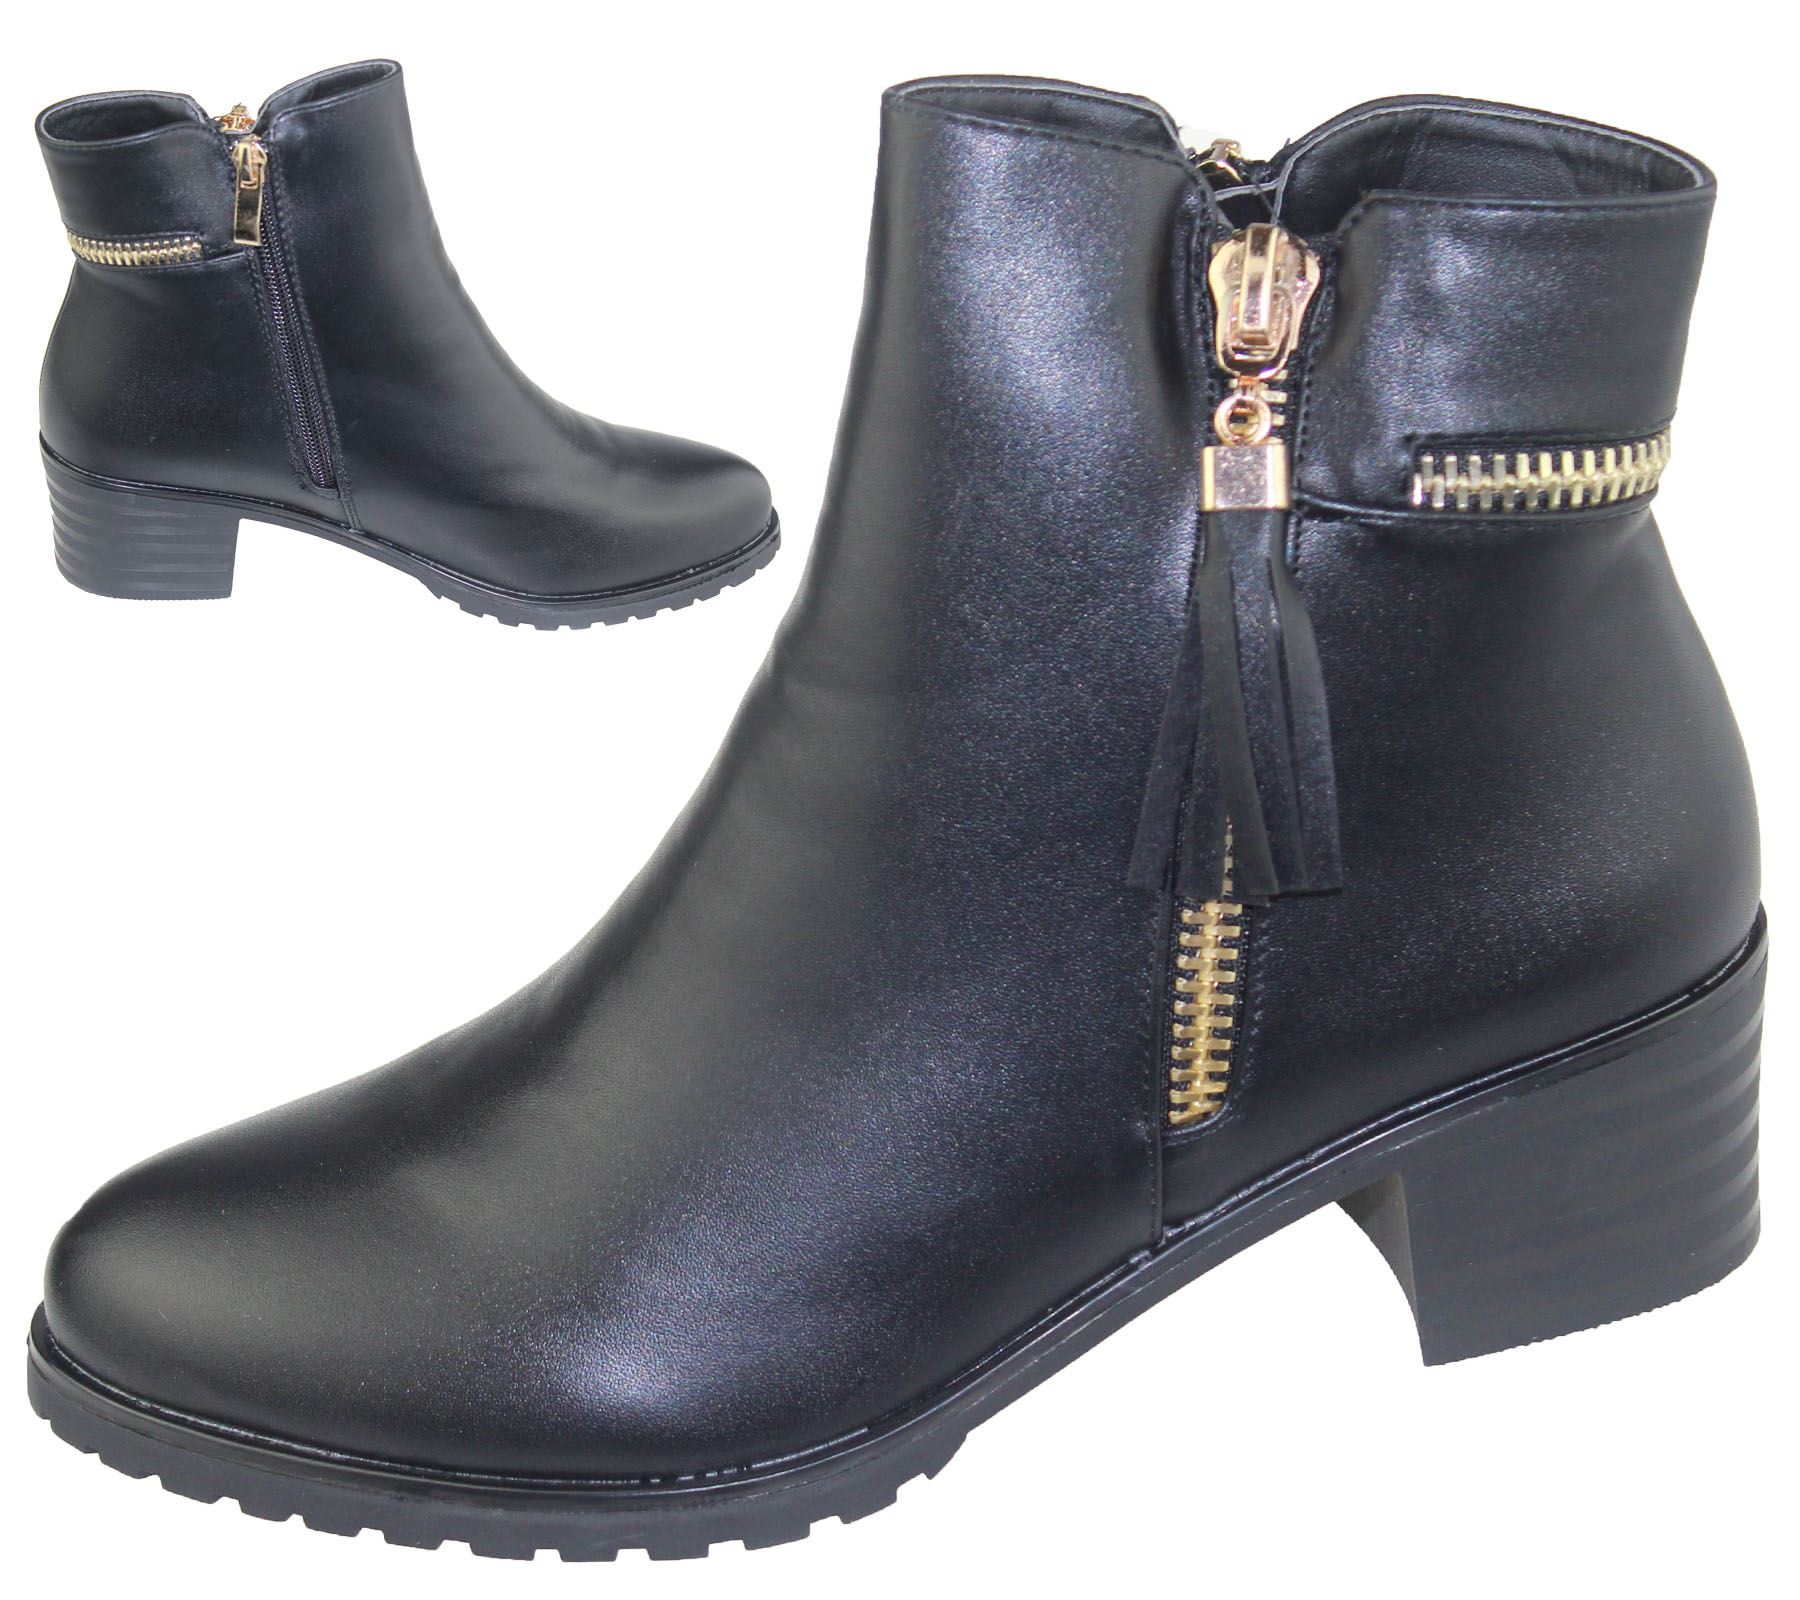 new womens velvet chelsea flat heel riding biker gold zip womens ankle boots THESE ANKLE BOOTS ARE A PERFECT MATCH FOR LOOKING GREAT. THE CHELSEA BOOTS STYLES ARE PERFECT FOR CASUAL EVERYDAY & PARTY WEAR.